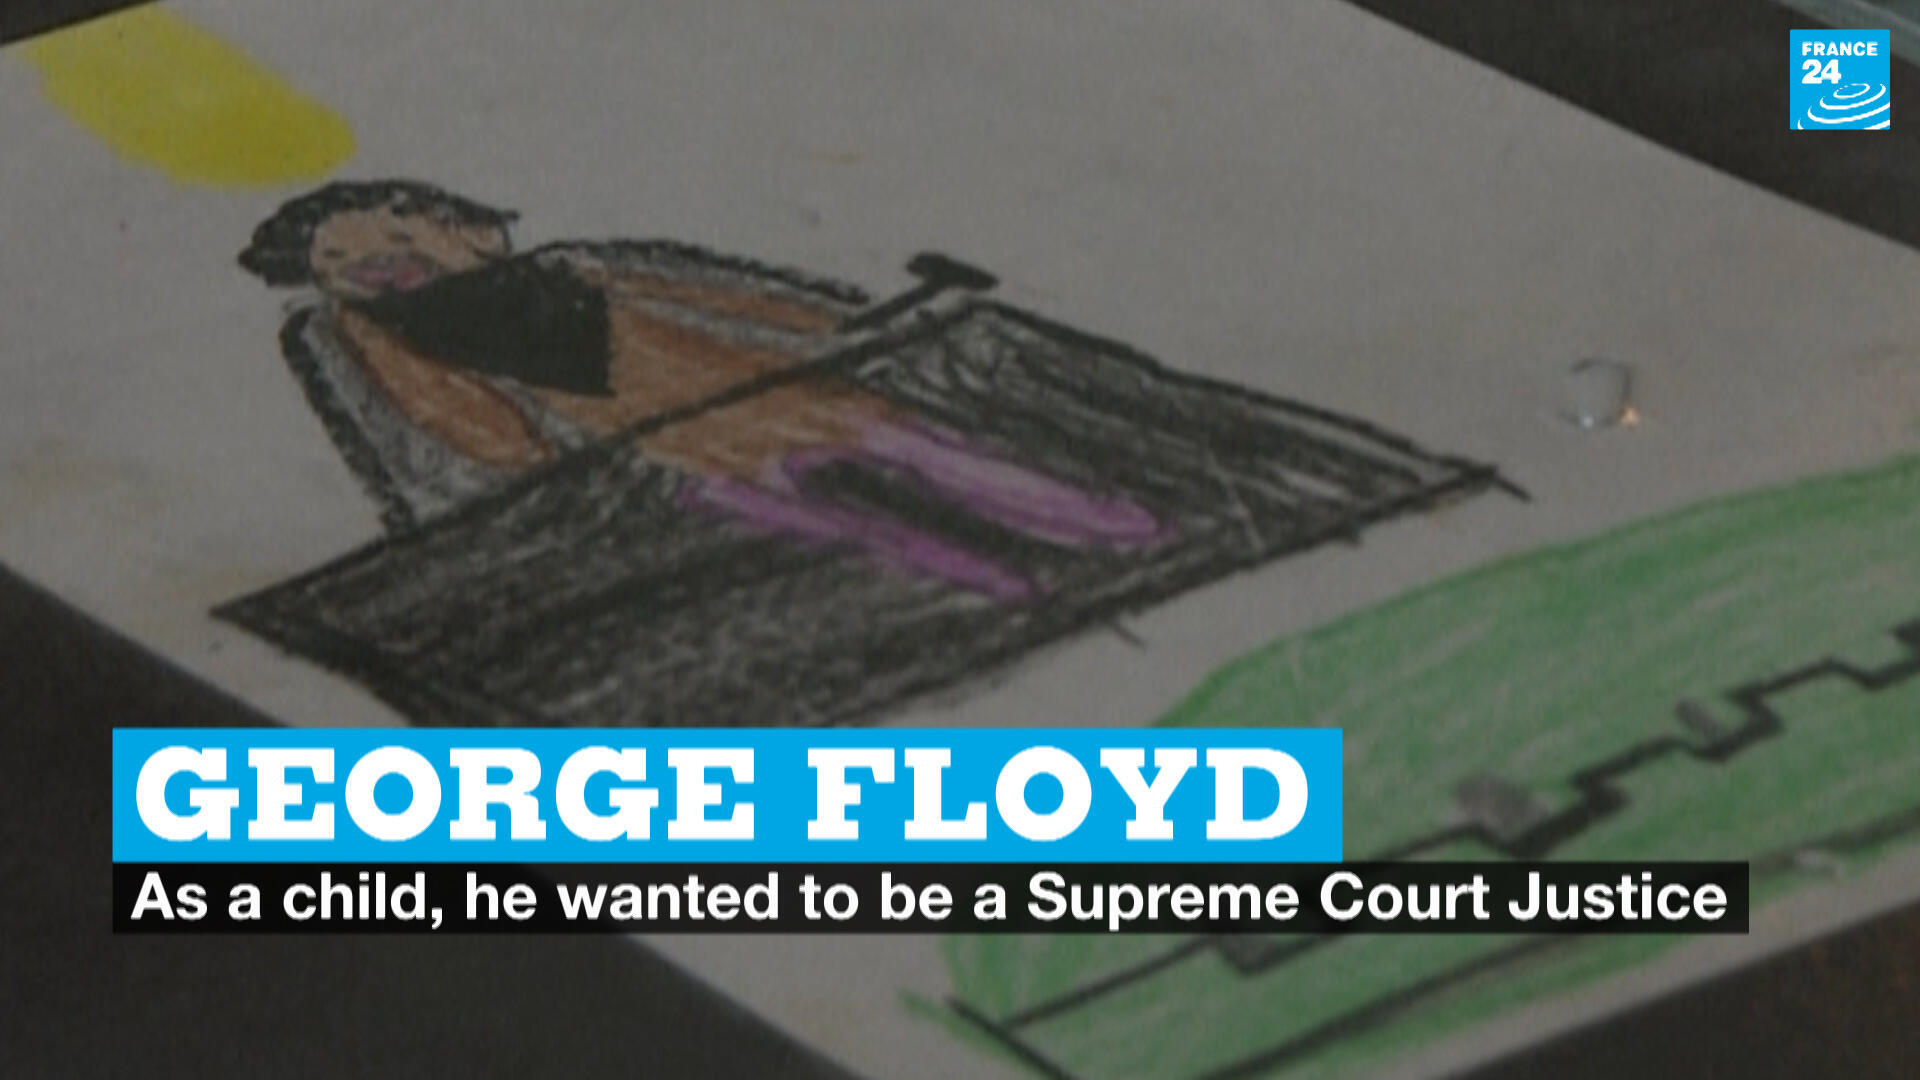 Waynel Sexton, George Perry Floyd's former teacher, found a short essay and drawing that he did in second grade. At the time, he dreamed of becoming a Supreme Court Justice.